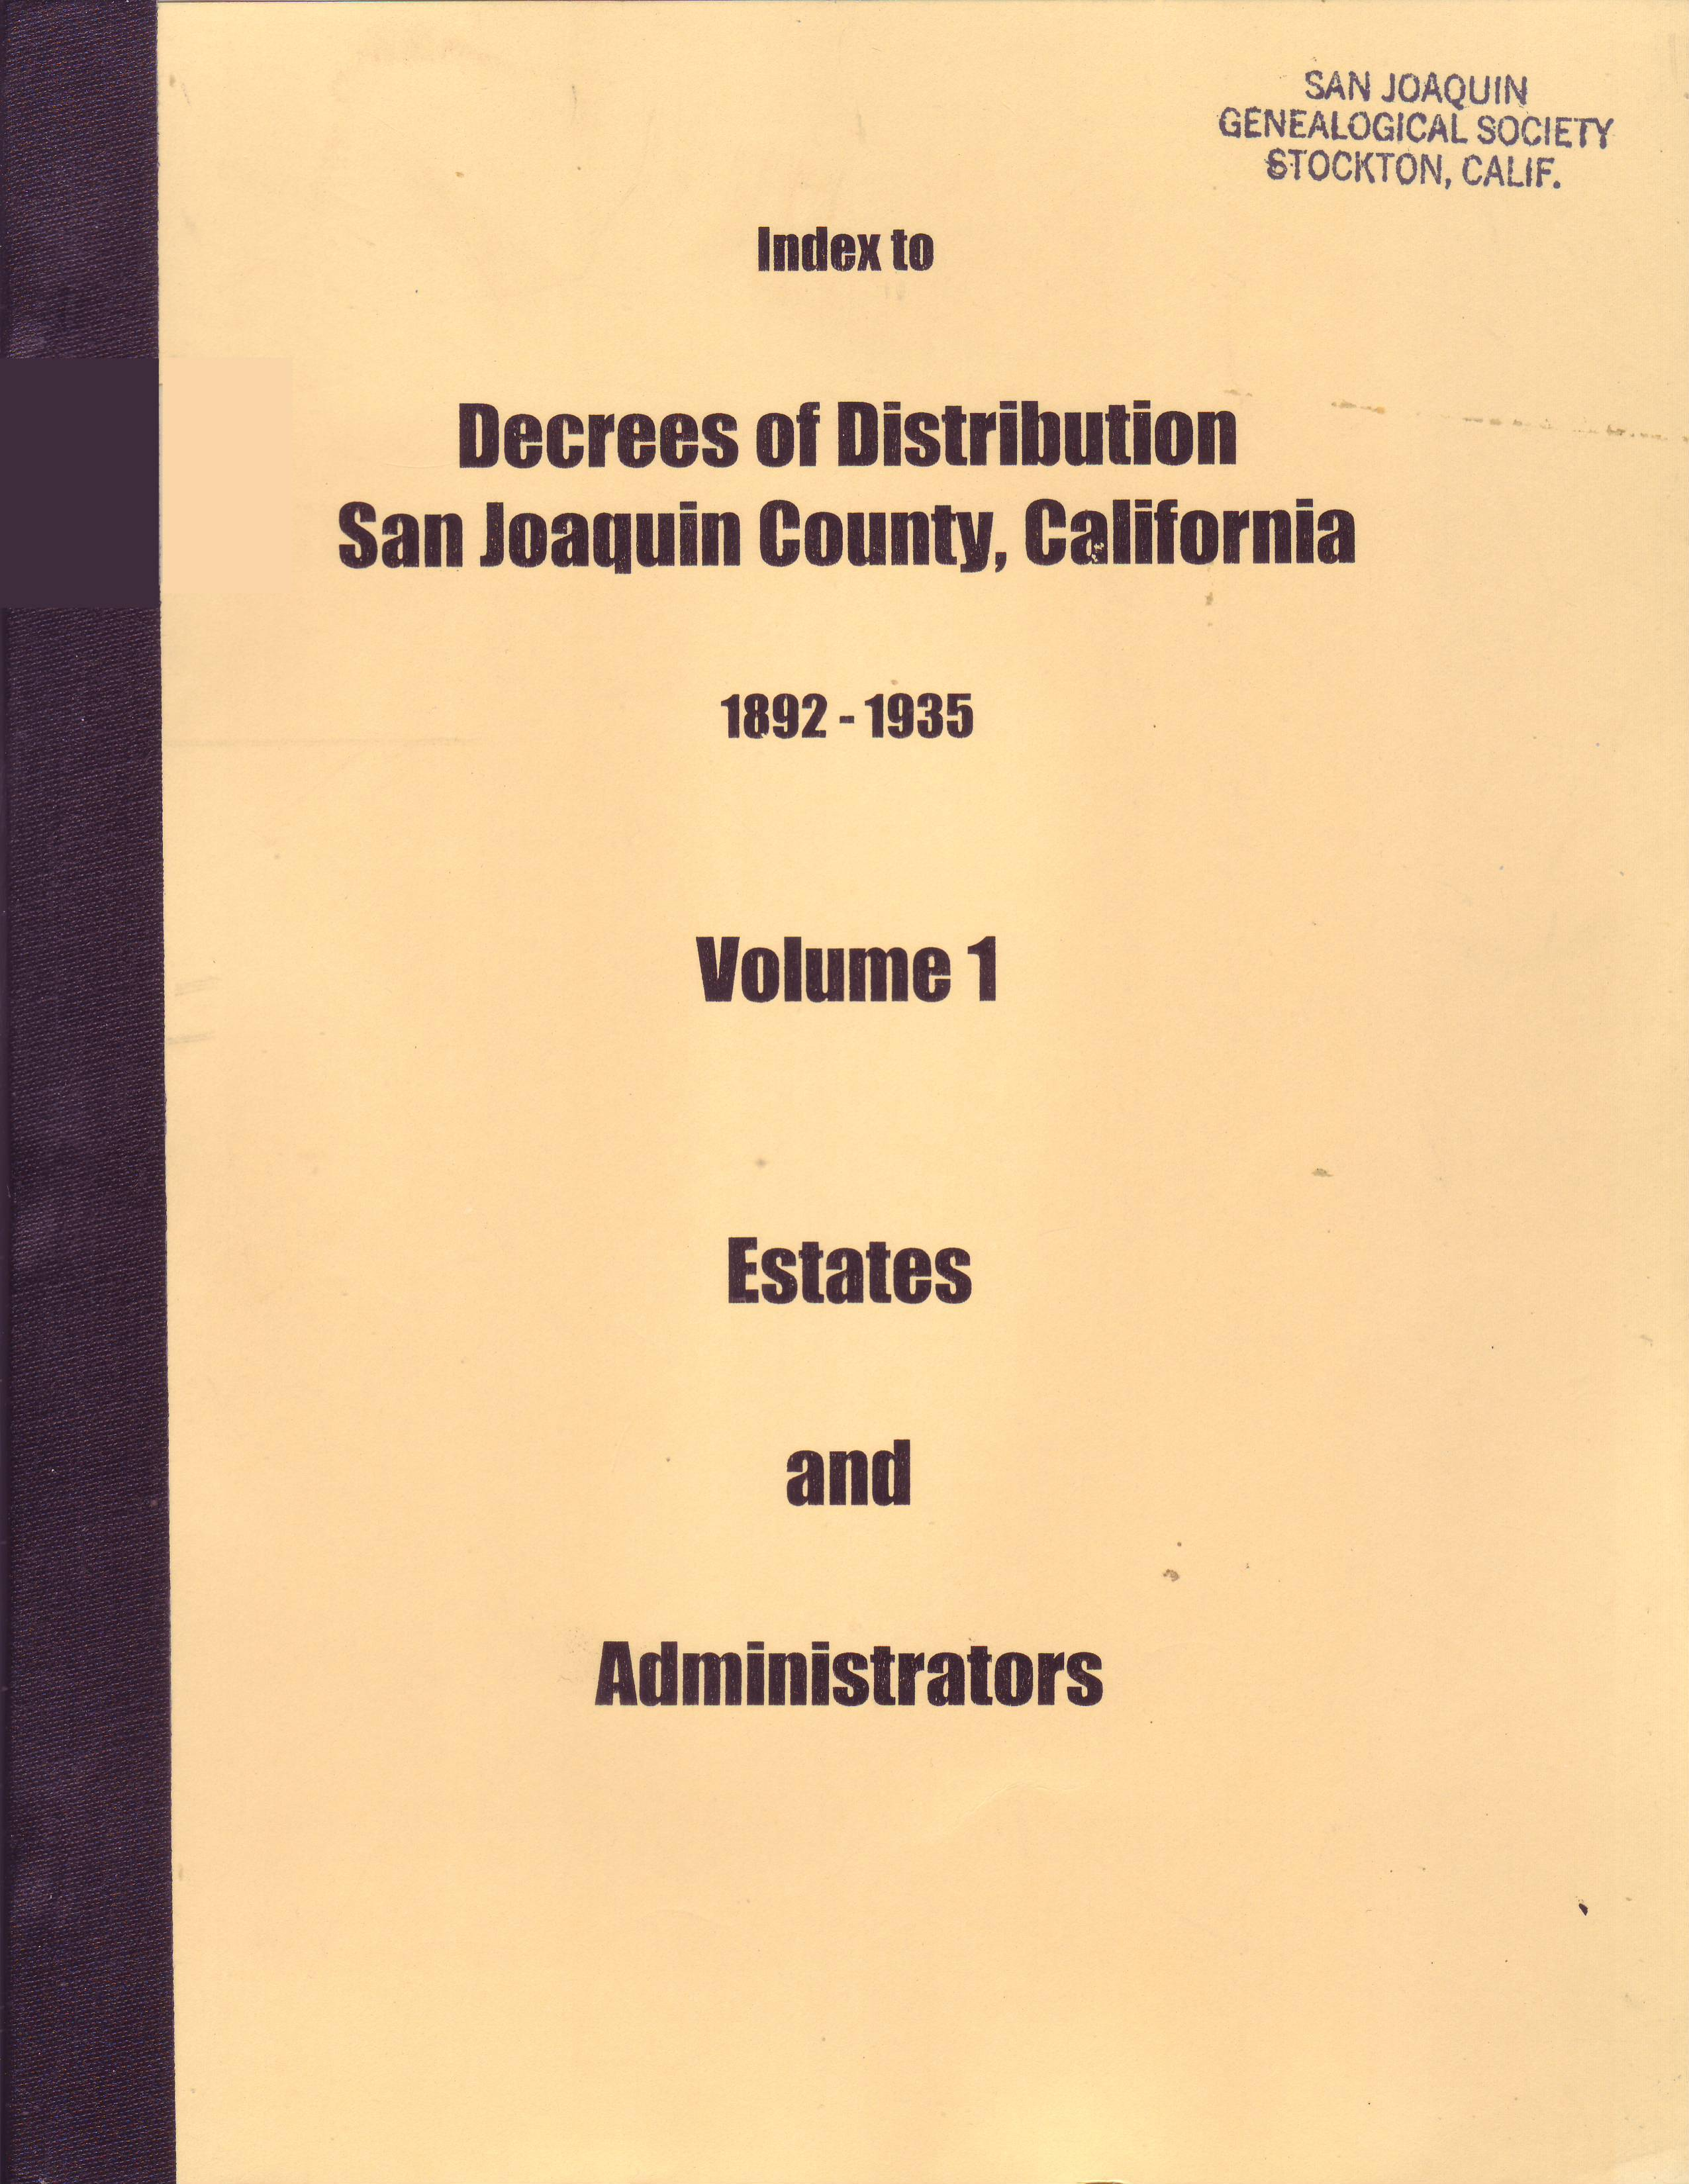 Index to Decrees of Distribution, San Joaquin County, California, 1892–1935, Volume 1, Estates and A